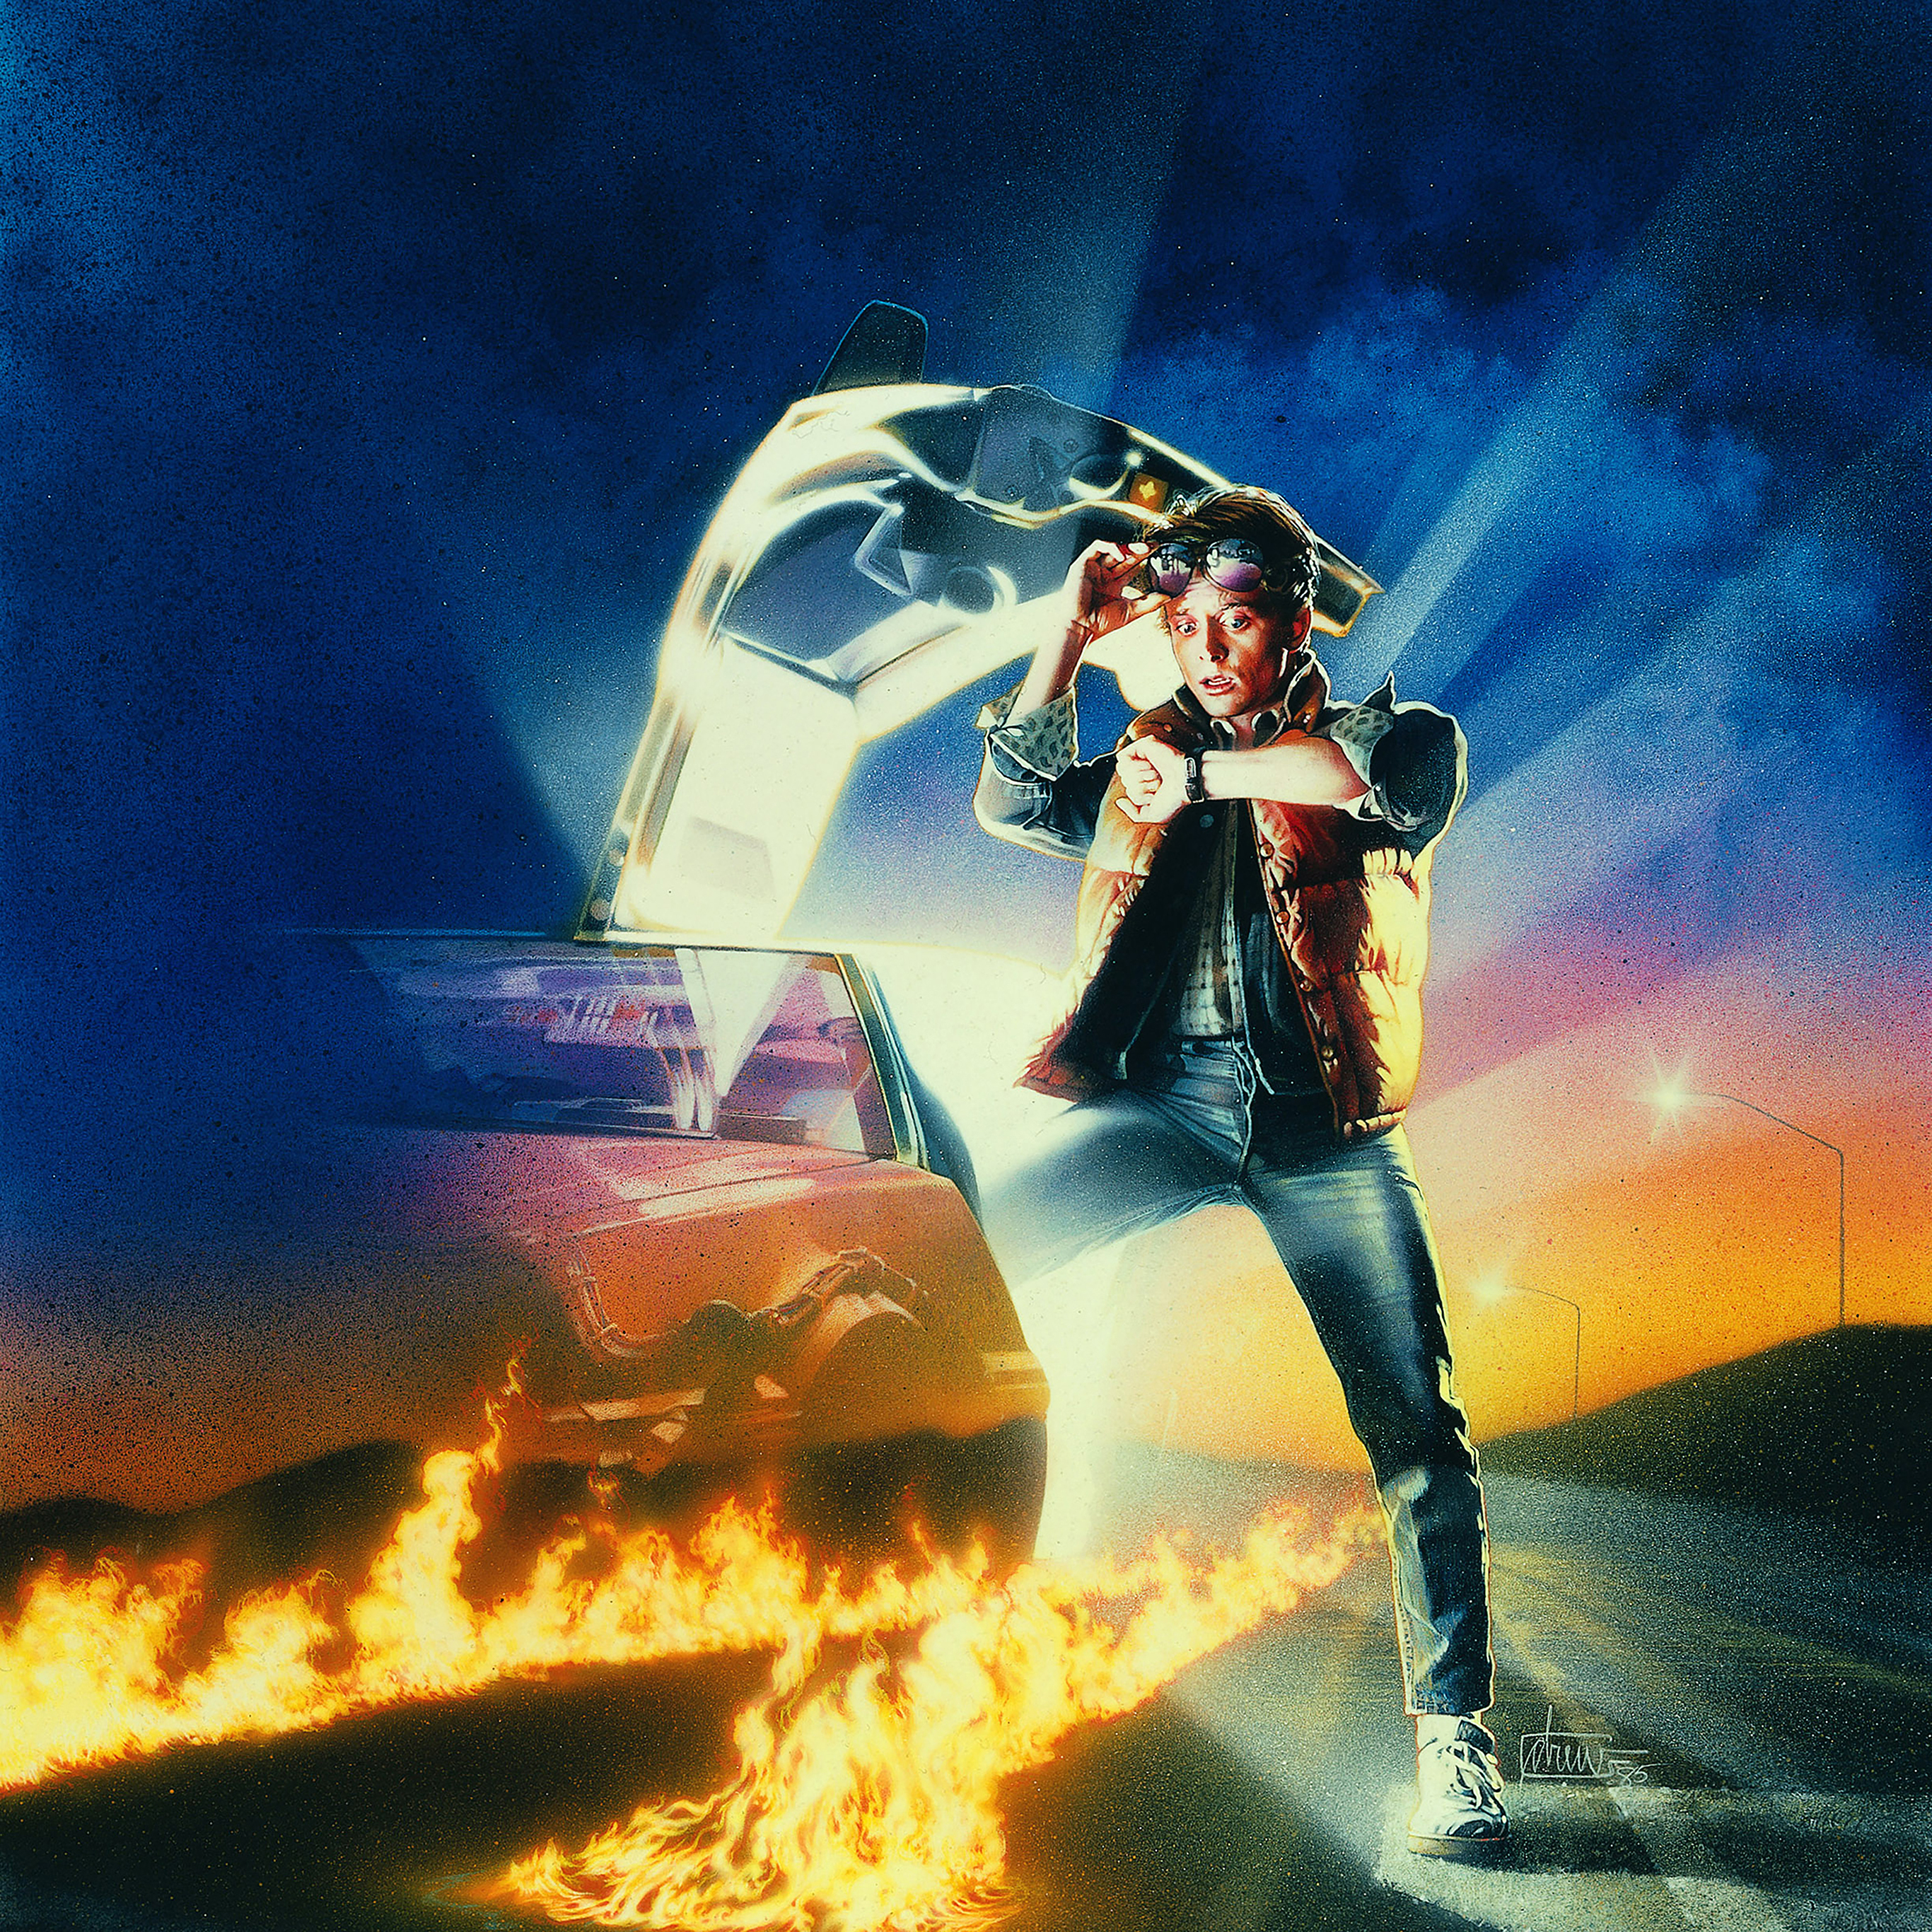 Ac43 Wallpaper Back To The Future Time Film Poster Papers Co